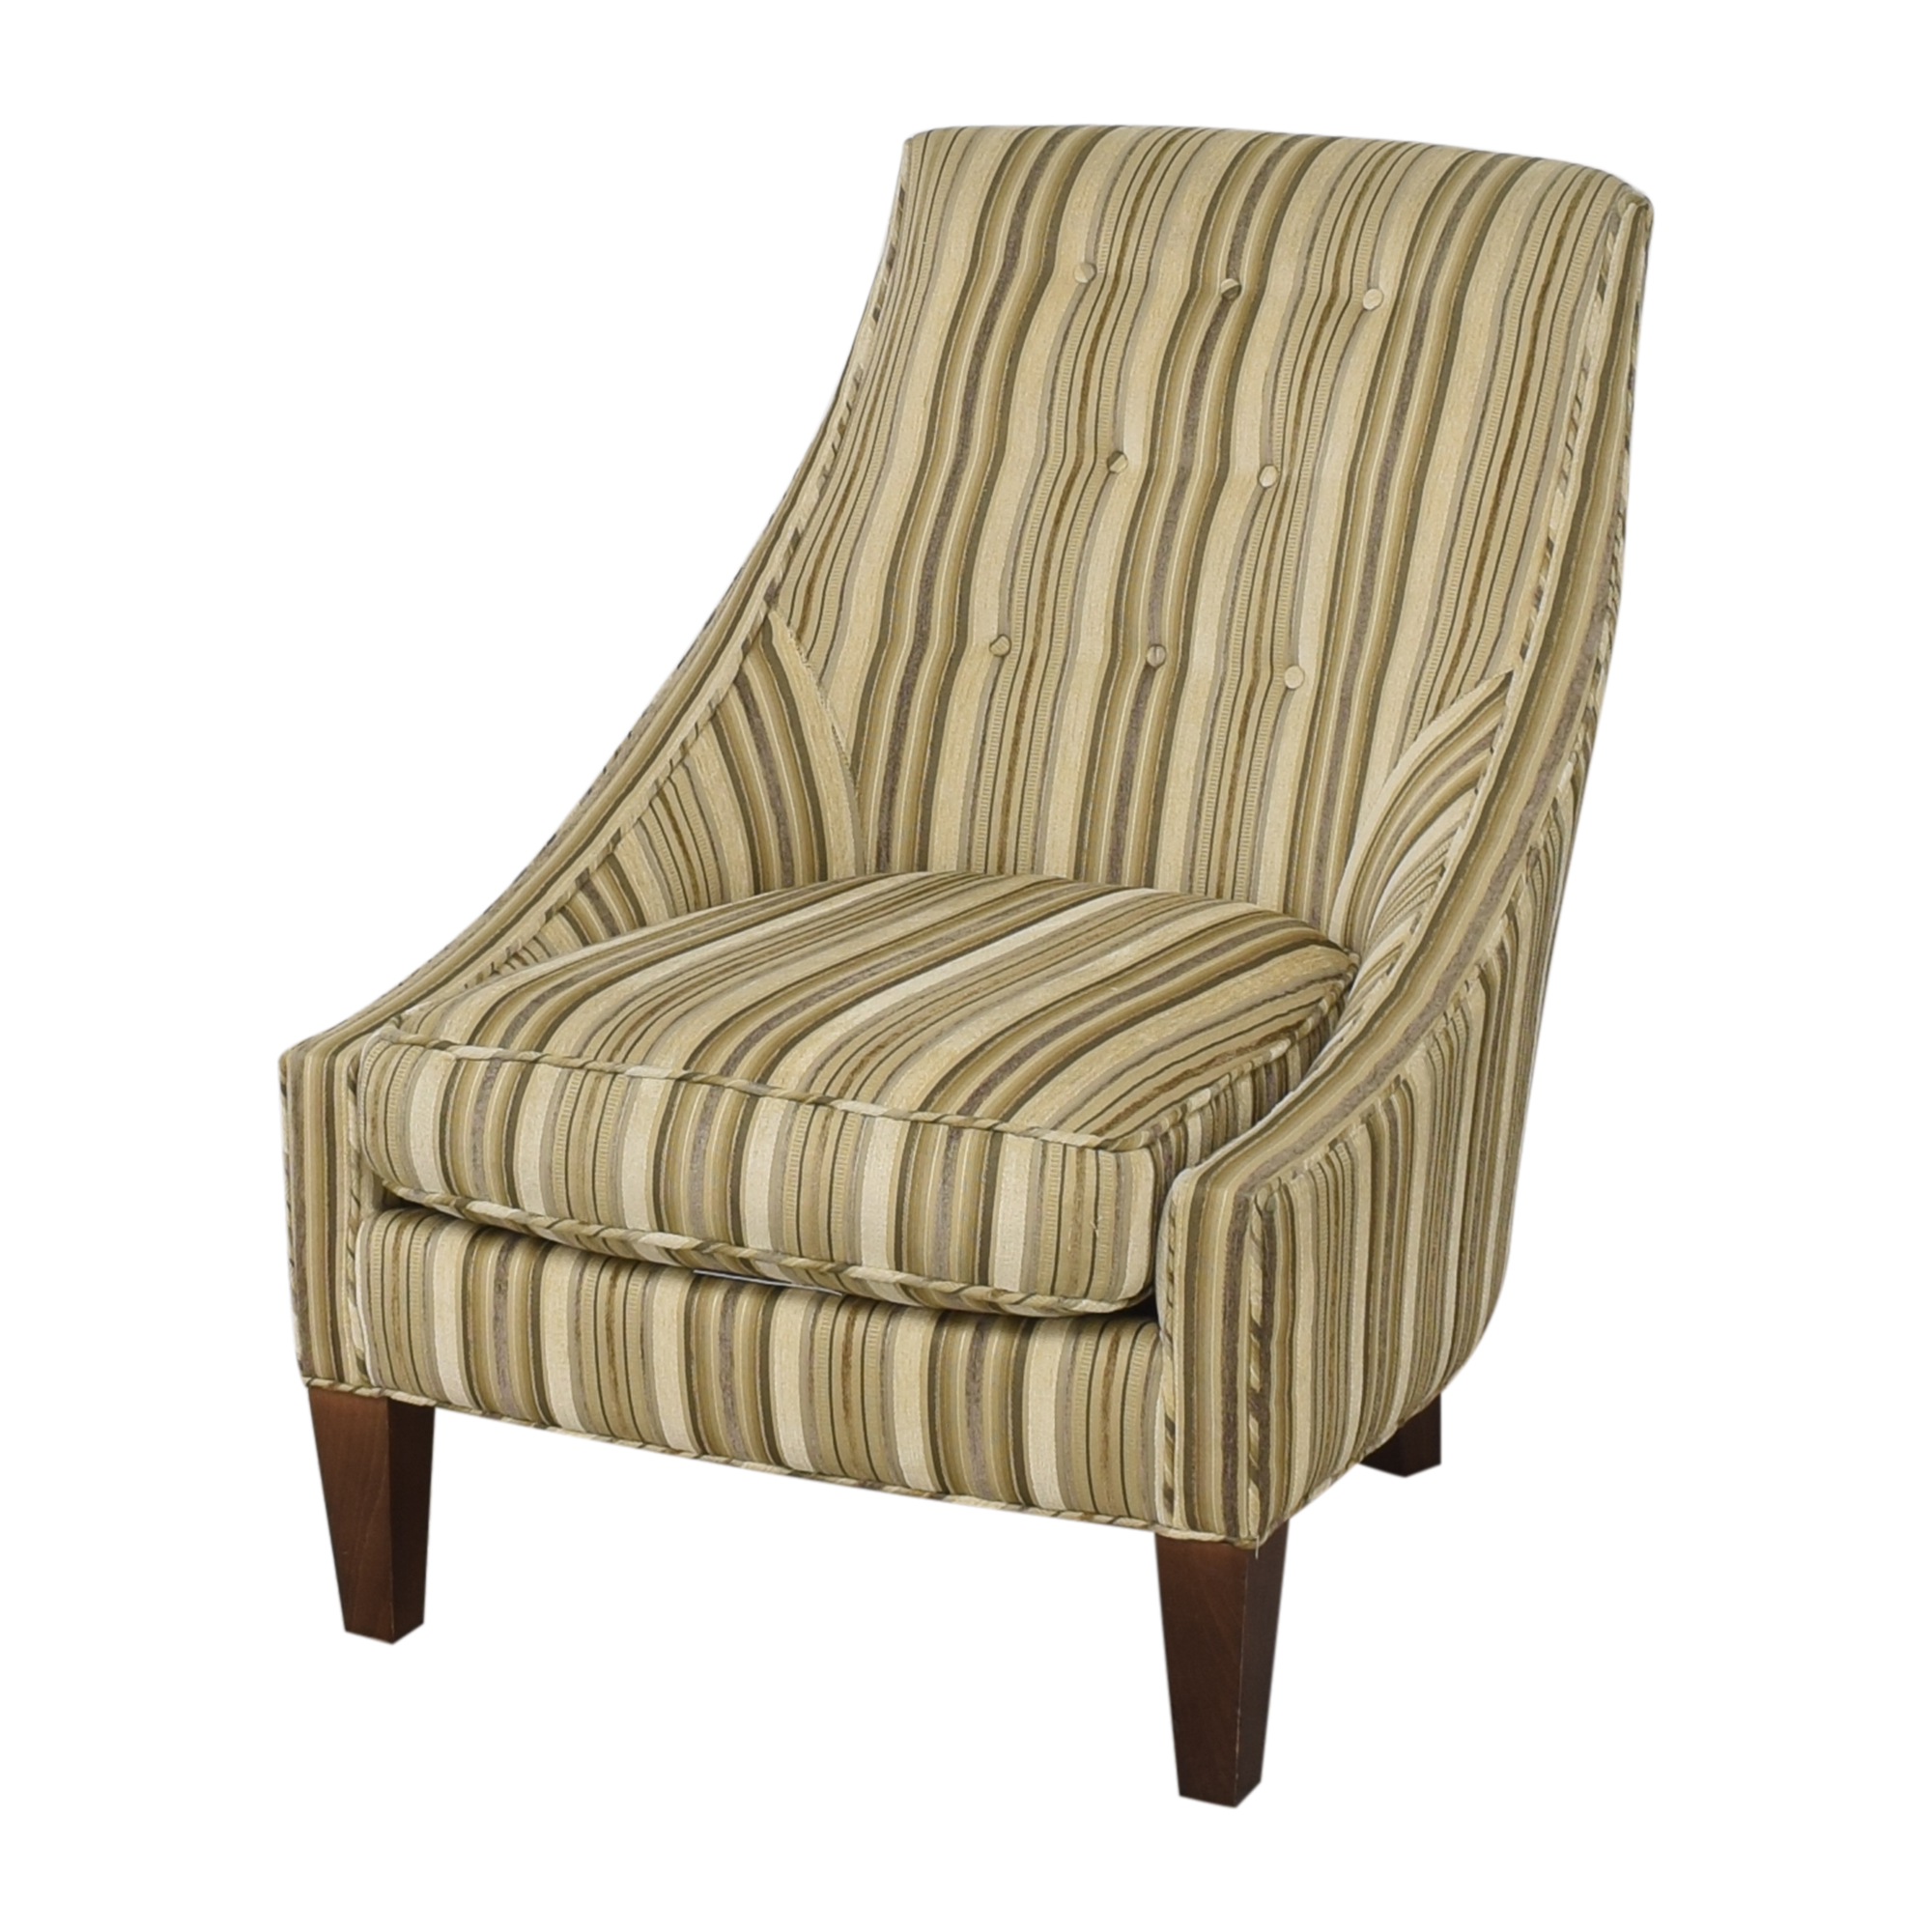 Lillian August Accent Chair / Chairs